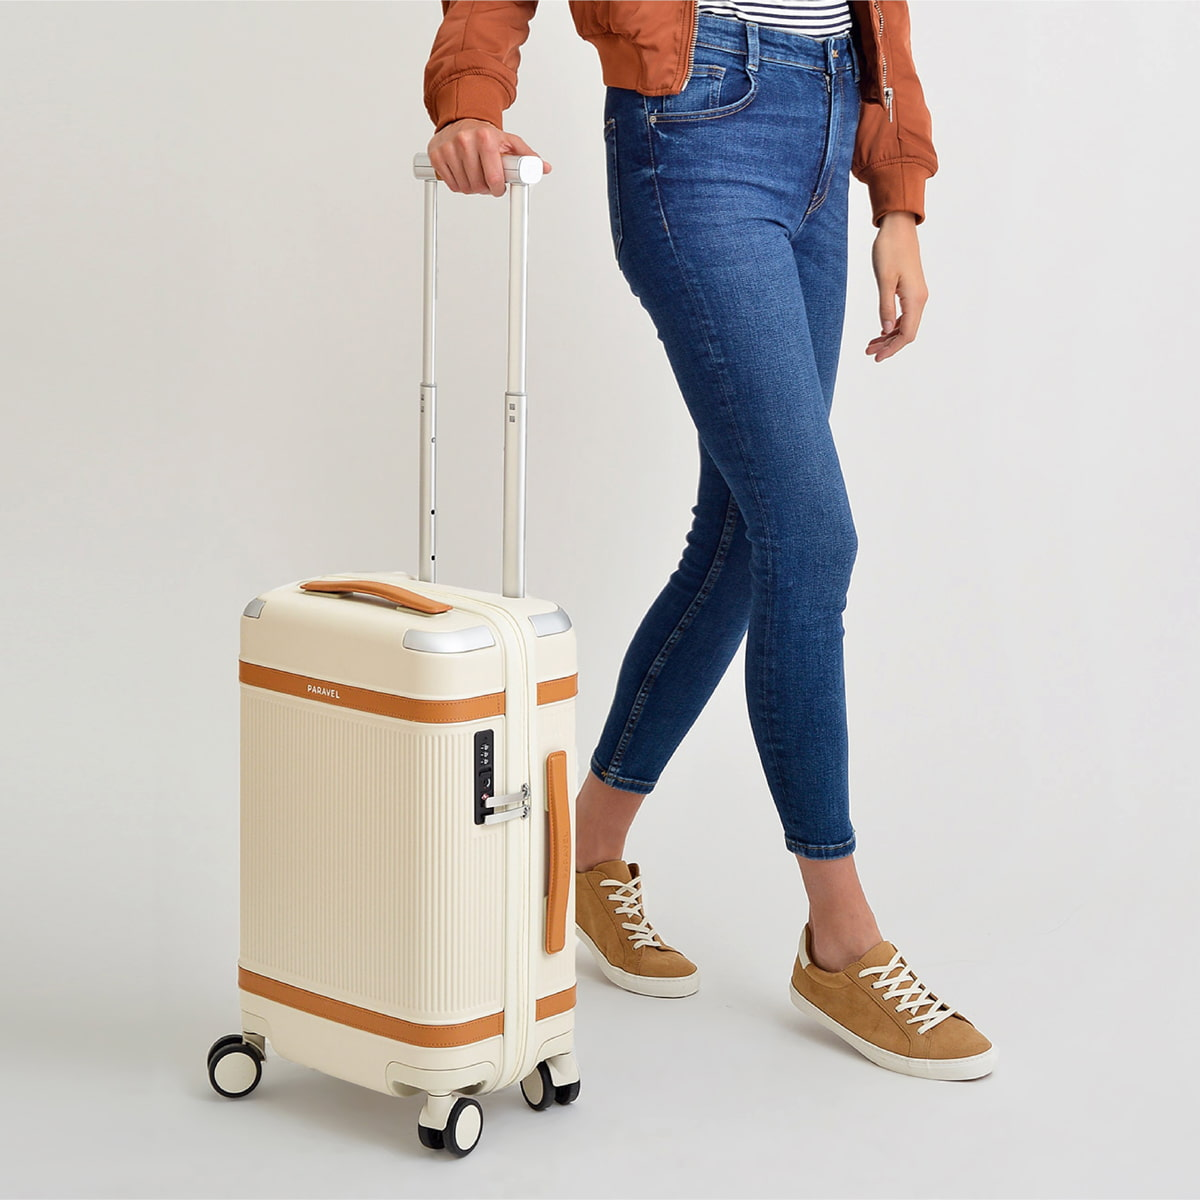 Best Carry-On Luggage for Women